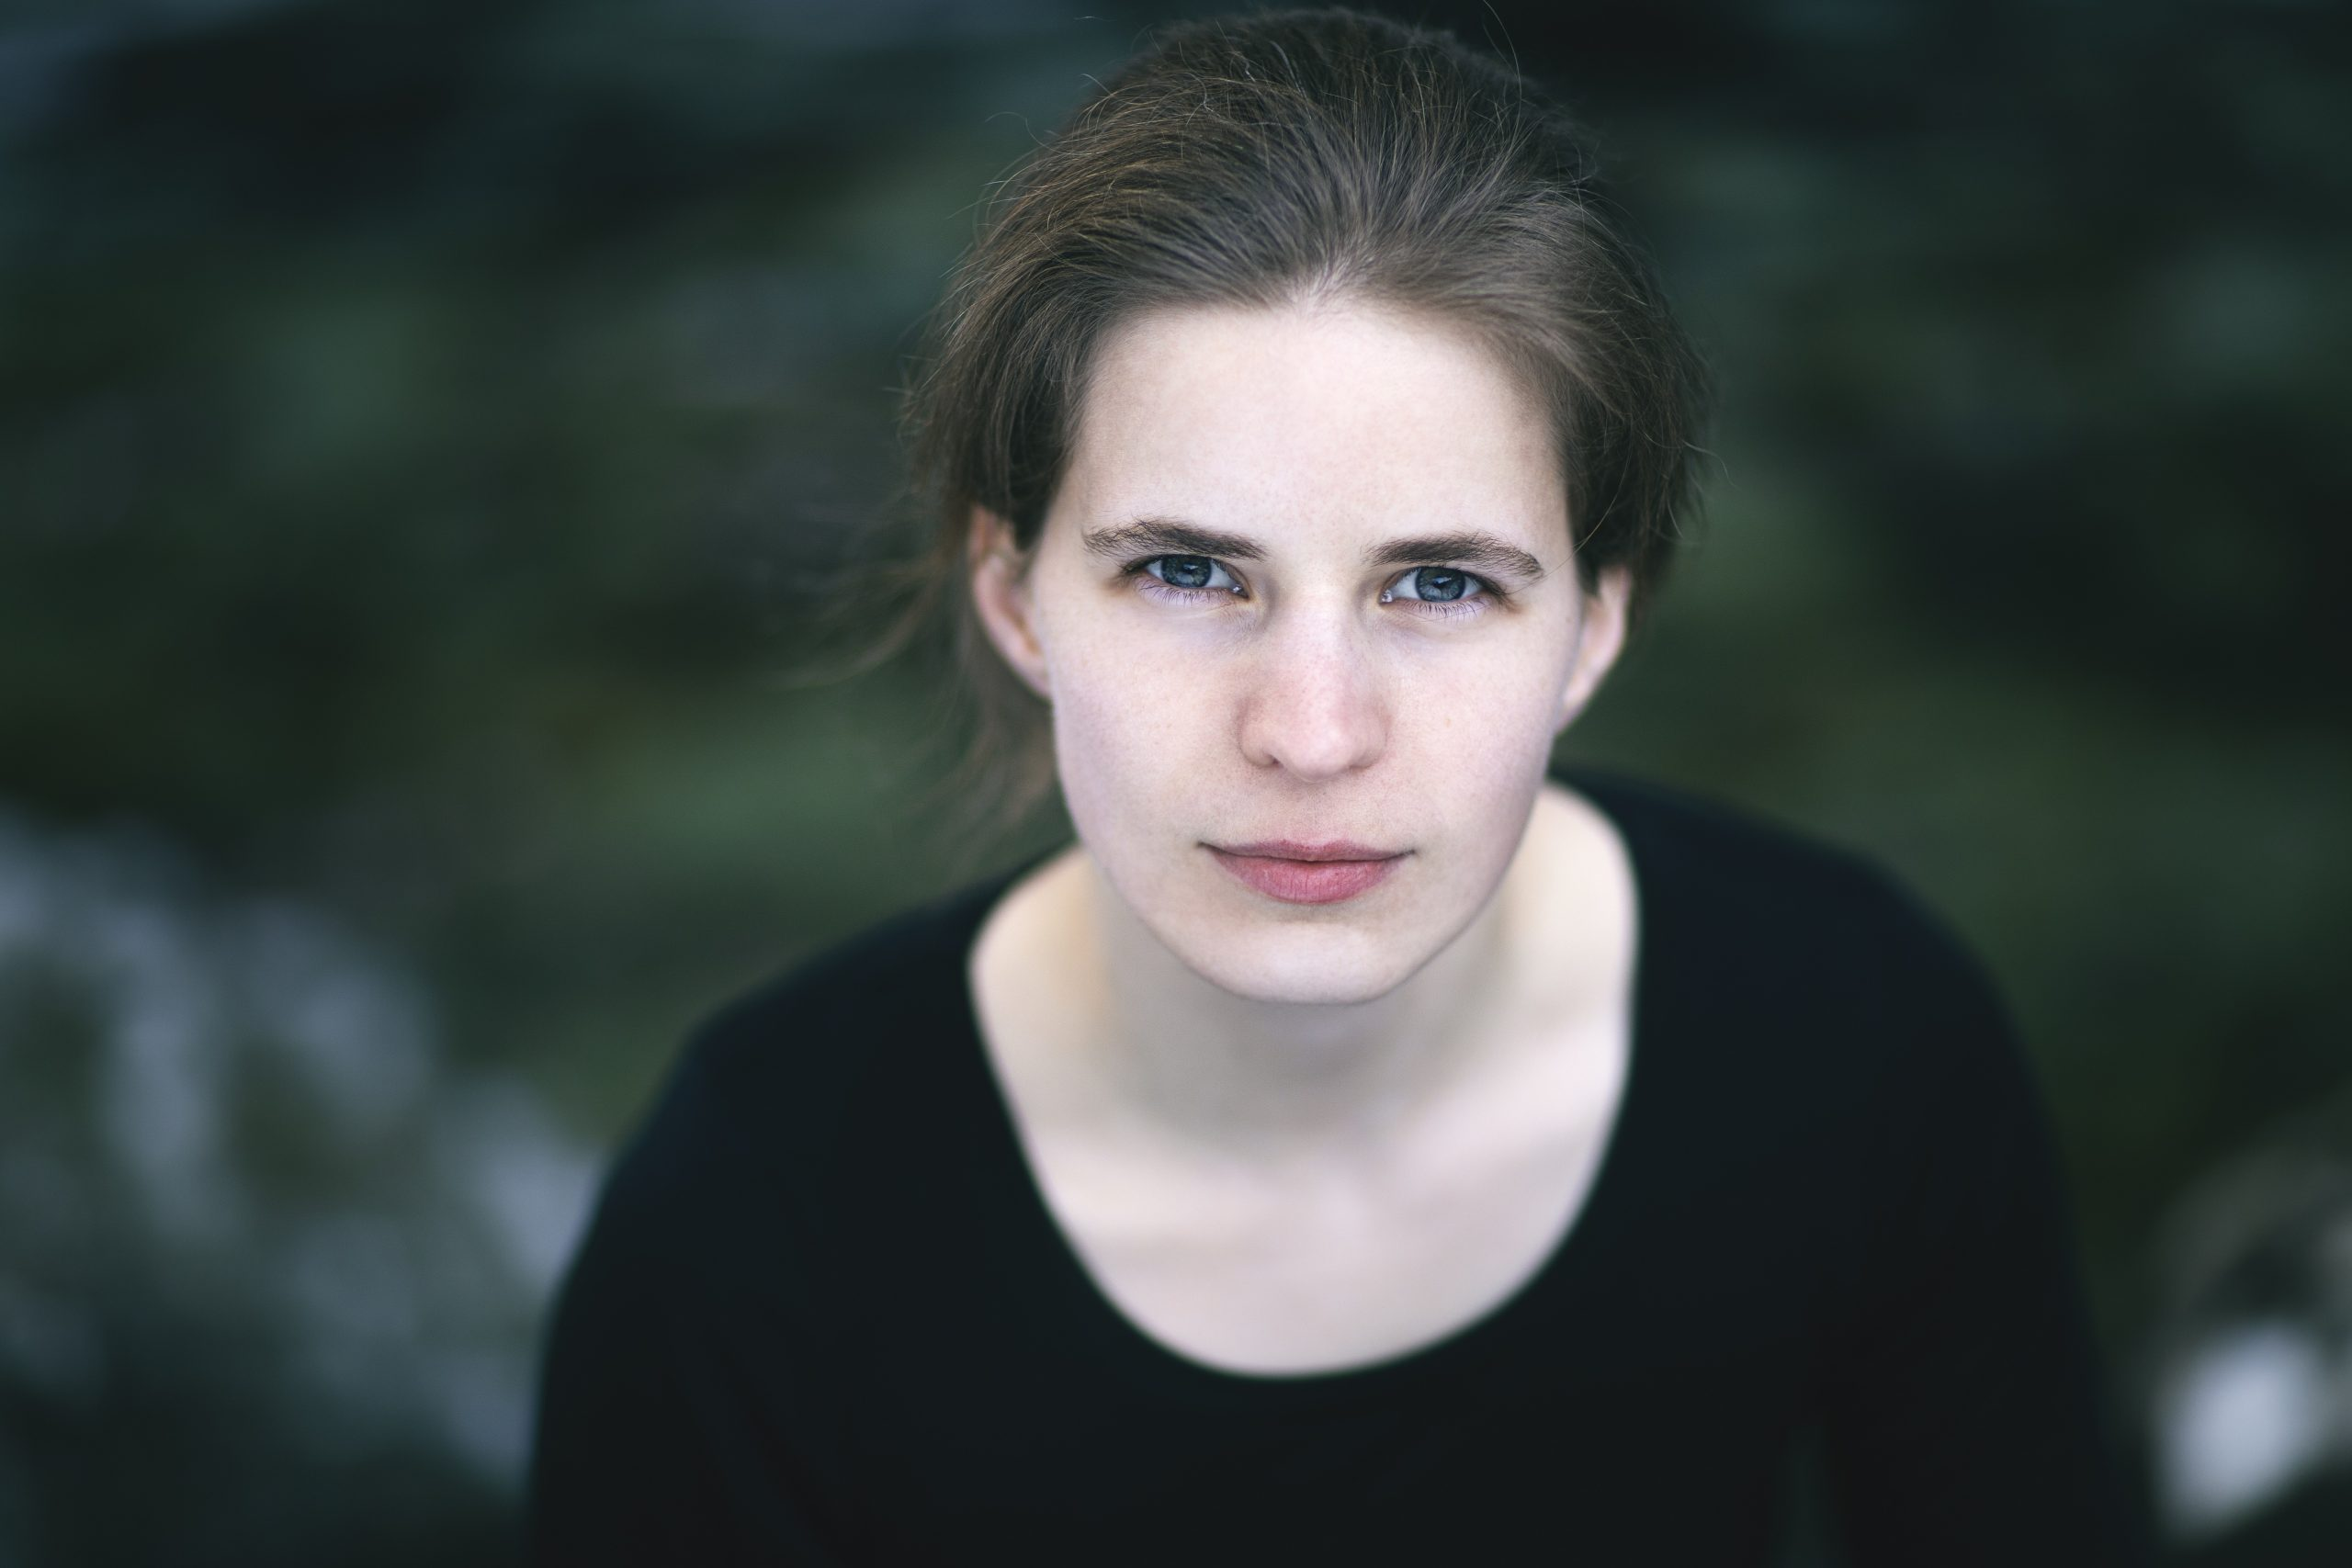 A portrait of Tabita Berglund who will be performing with The Hallé - Beethoven's Seventh Symphony